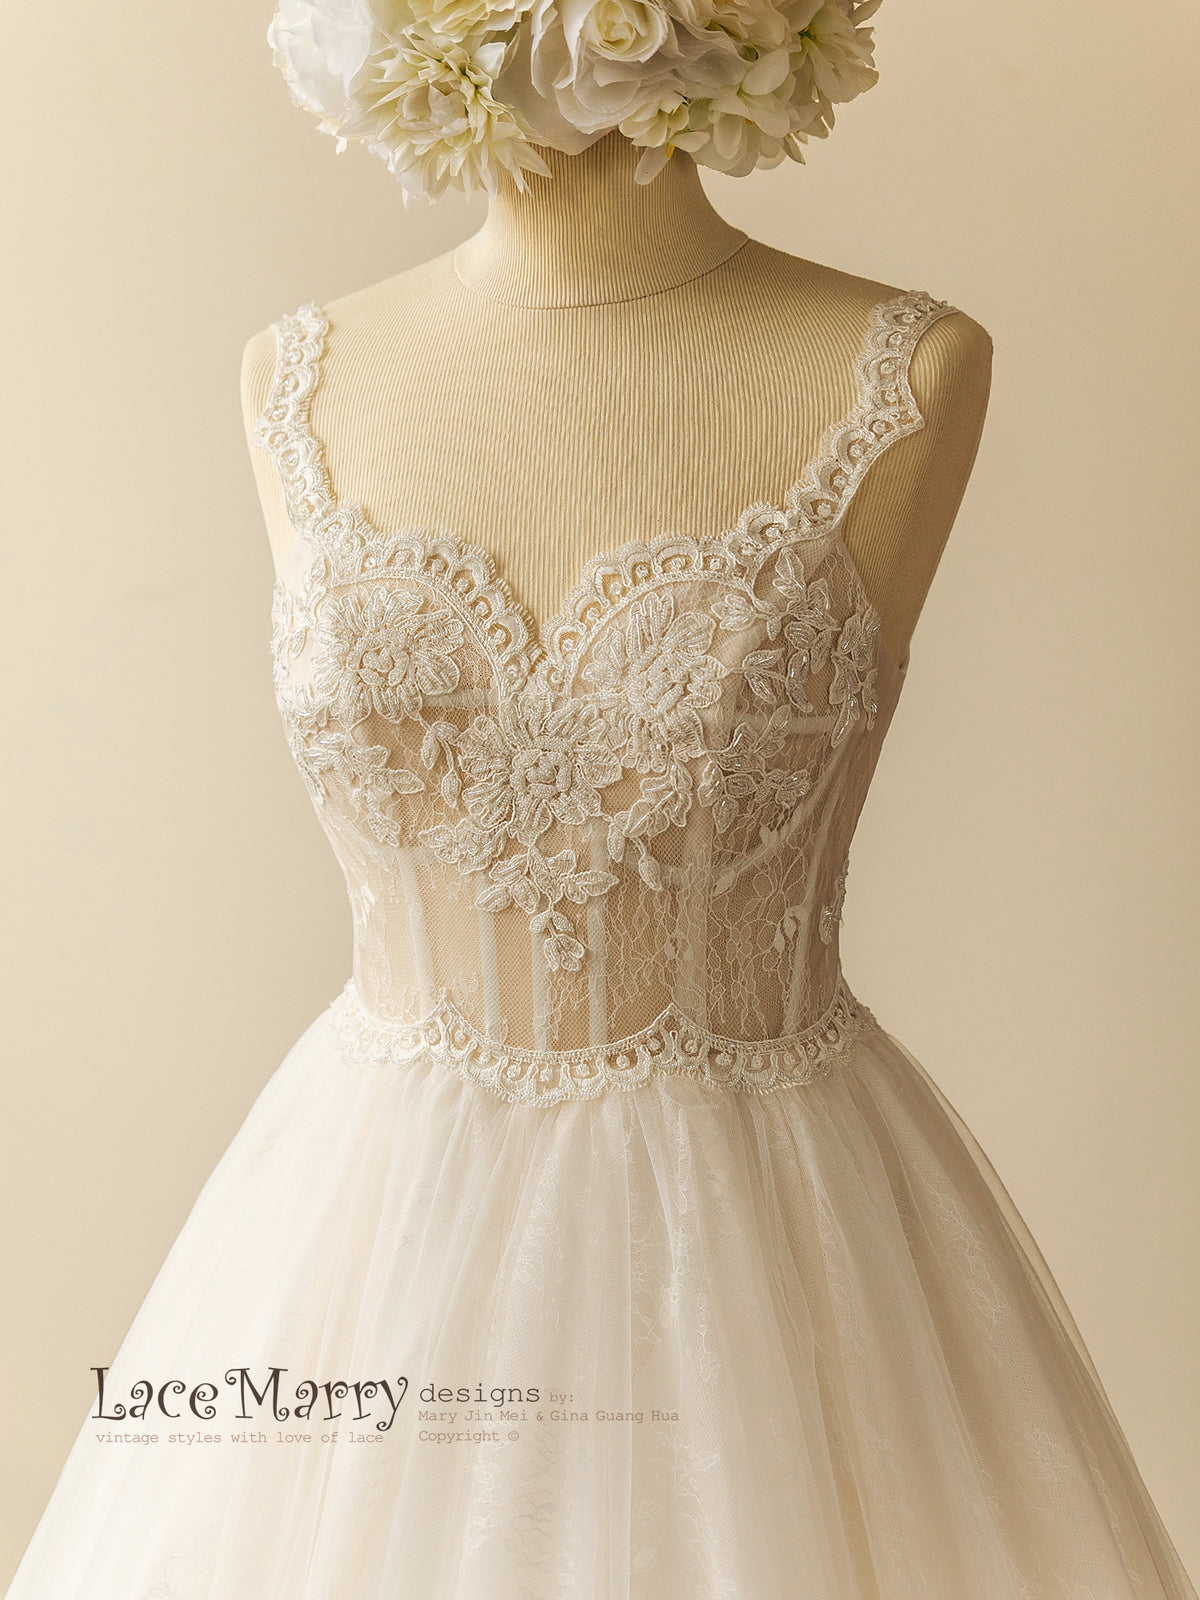 Corset Style Romantic Wedding Dress